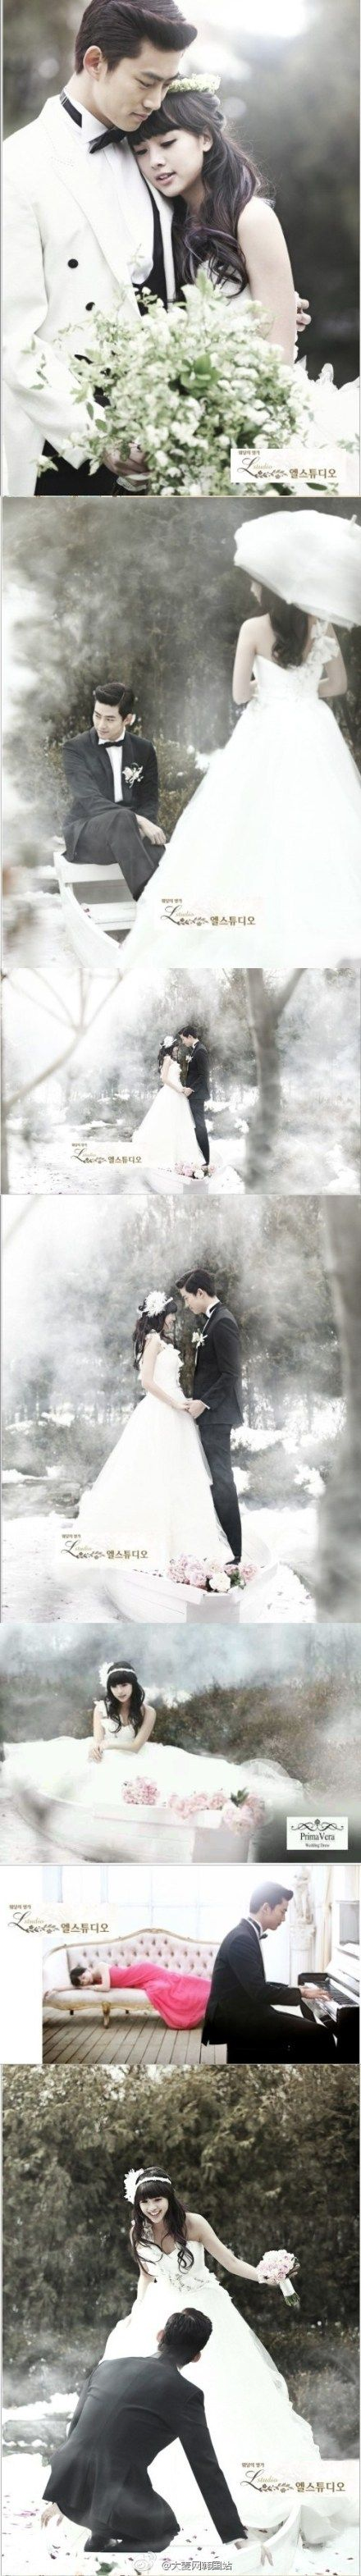 Love their wedding pics - We got married Intl